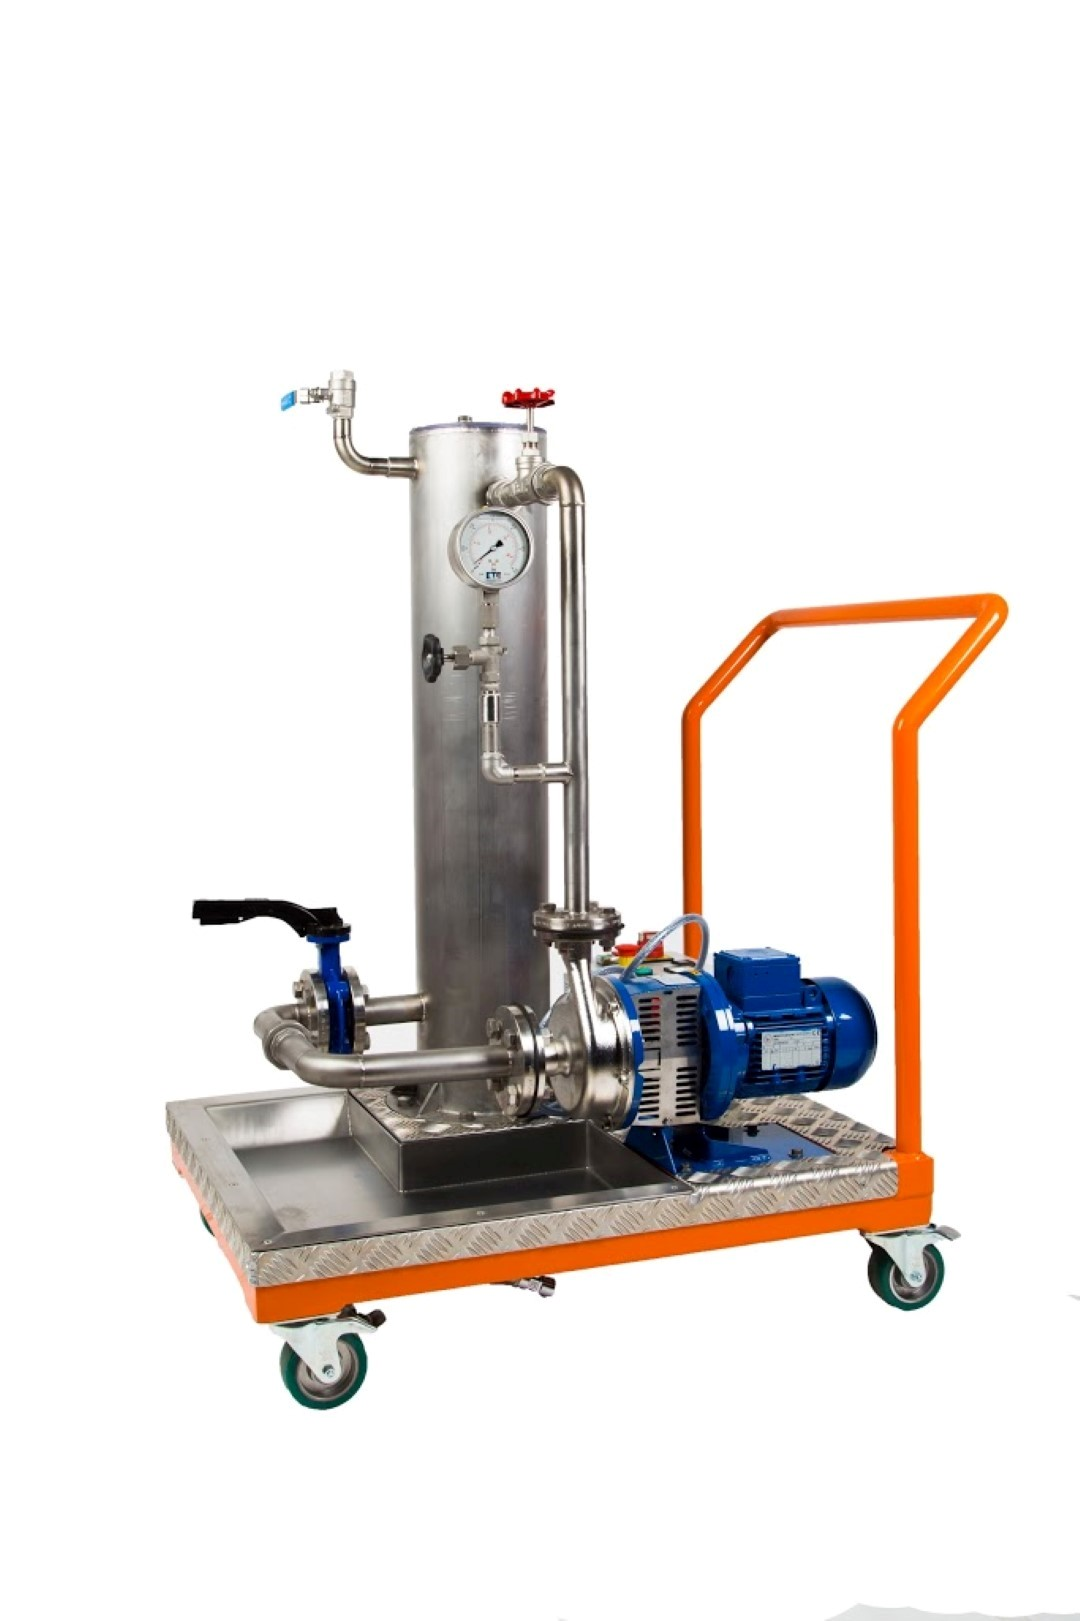 Gland Packing Rig